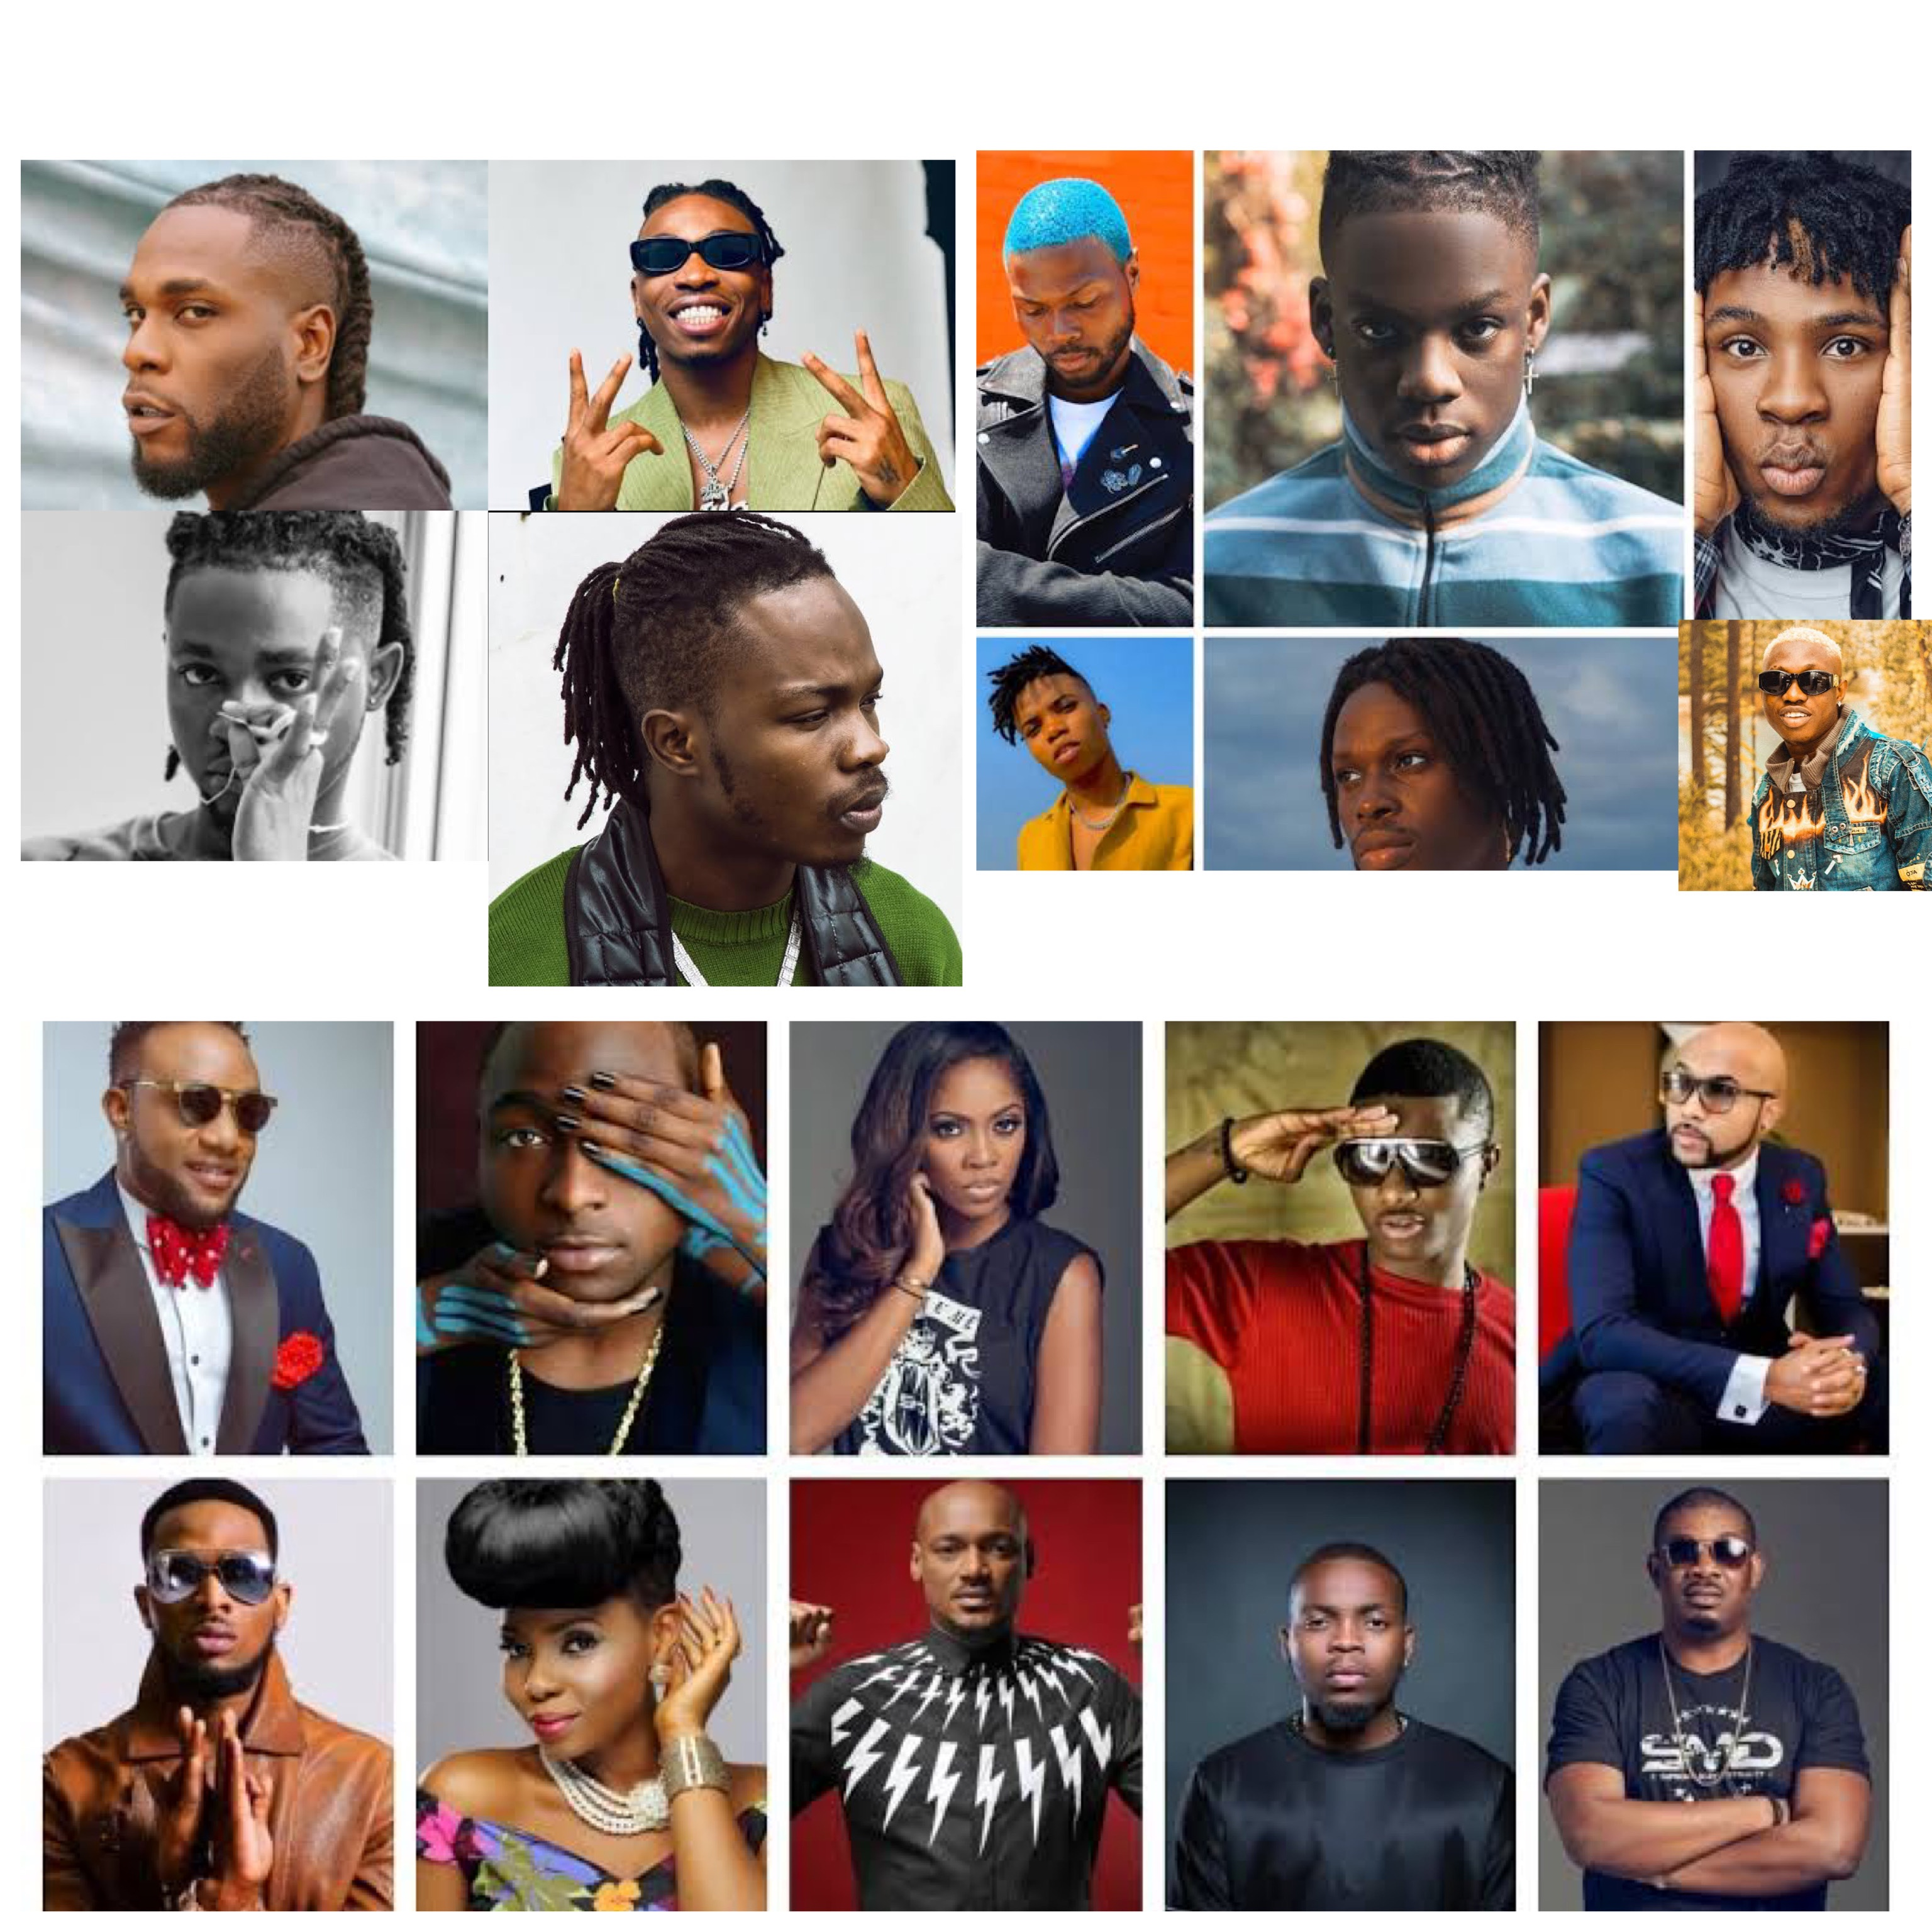 The emergence of the 'Yahoo boys' in the Nigerian music business, is doing more bad than good – Omogbolahan